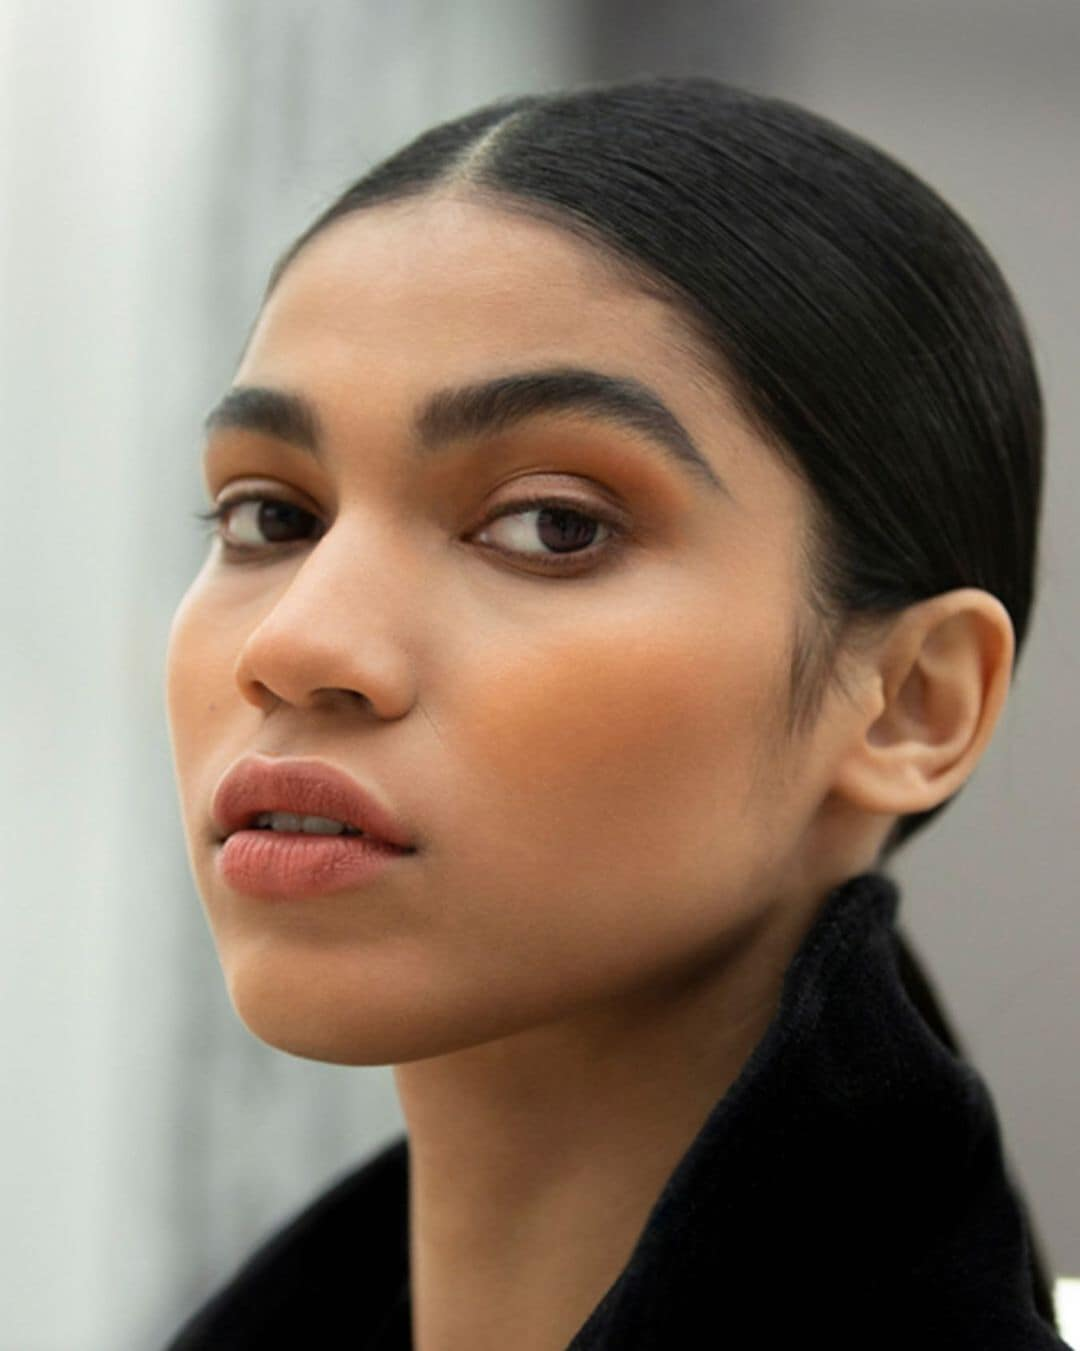 Soft and smokey. Model @RaynaraNegrine takes a final pause before heading down the CHANEL Spring-Summer 2021 Haute Couture runway. Girls were given a boyish and lived-in look with strong brows and soft smokey eyes for the show makeup. (Photo: Instagram/Chanel.beauty)